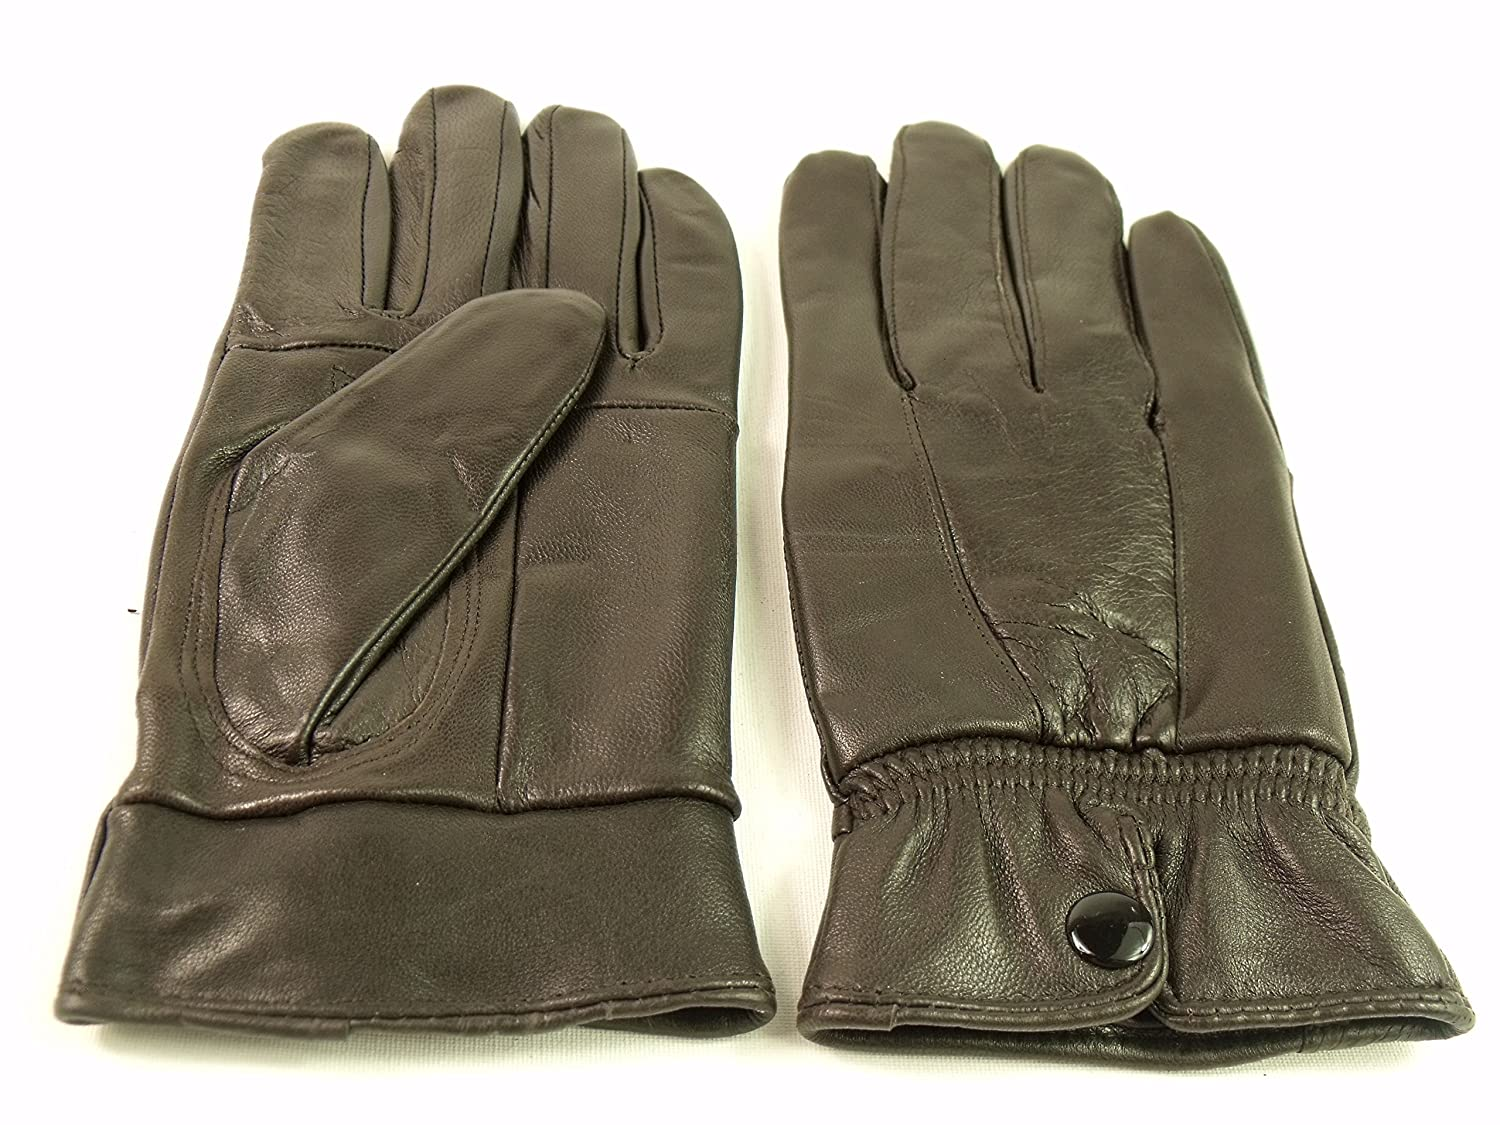 Womens leather gloves australia - Ladies New Soft Leather Fully Lined Gloves By Lorenz 8910 Small Brown Amazon Co Uk Clothing